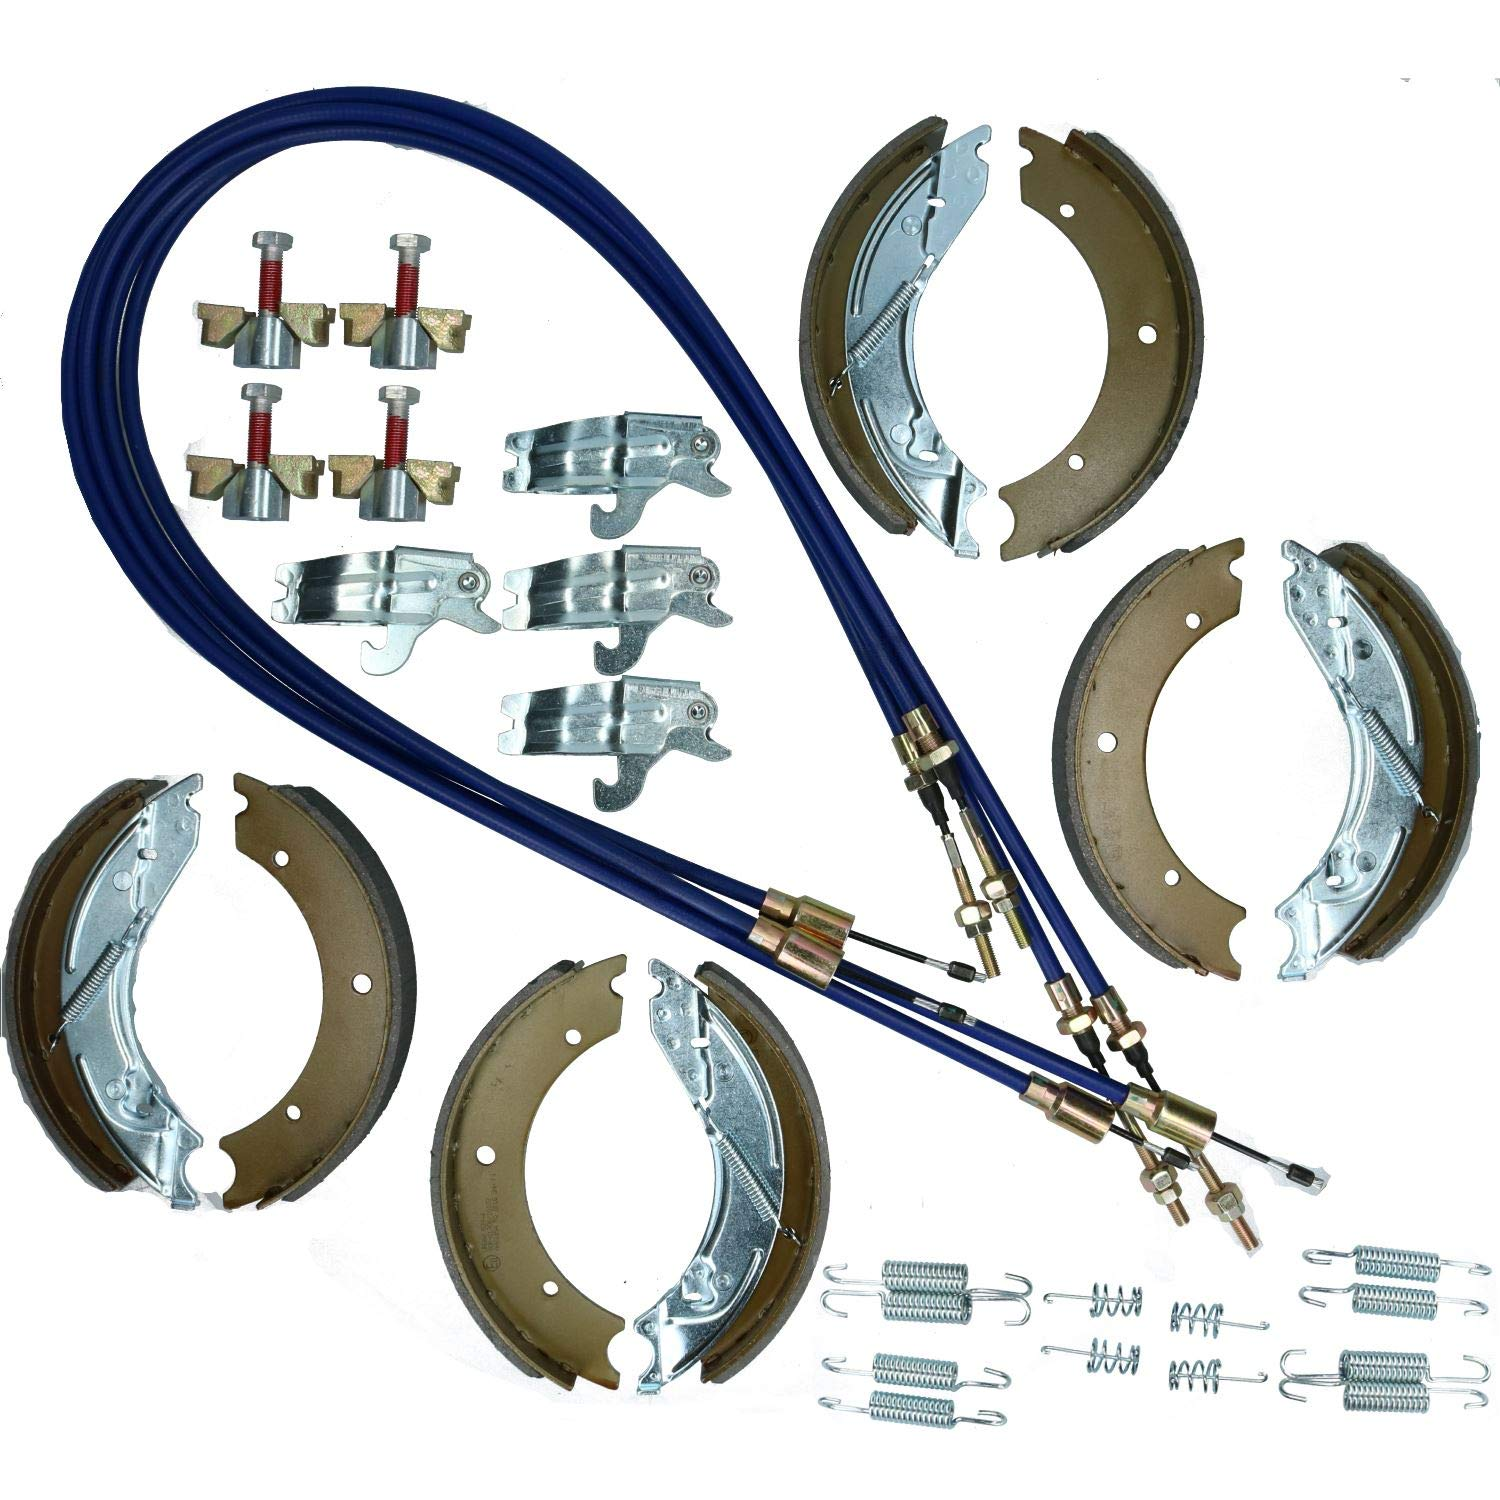 AB Tools/_URB Brake Shoe /& Cable Full Kit for Ifor Williams Flatbed Trailer LM7 Series 3500kg